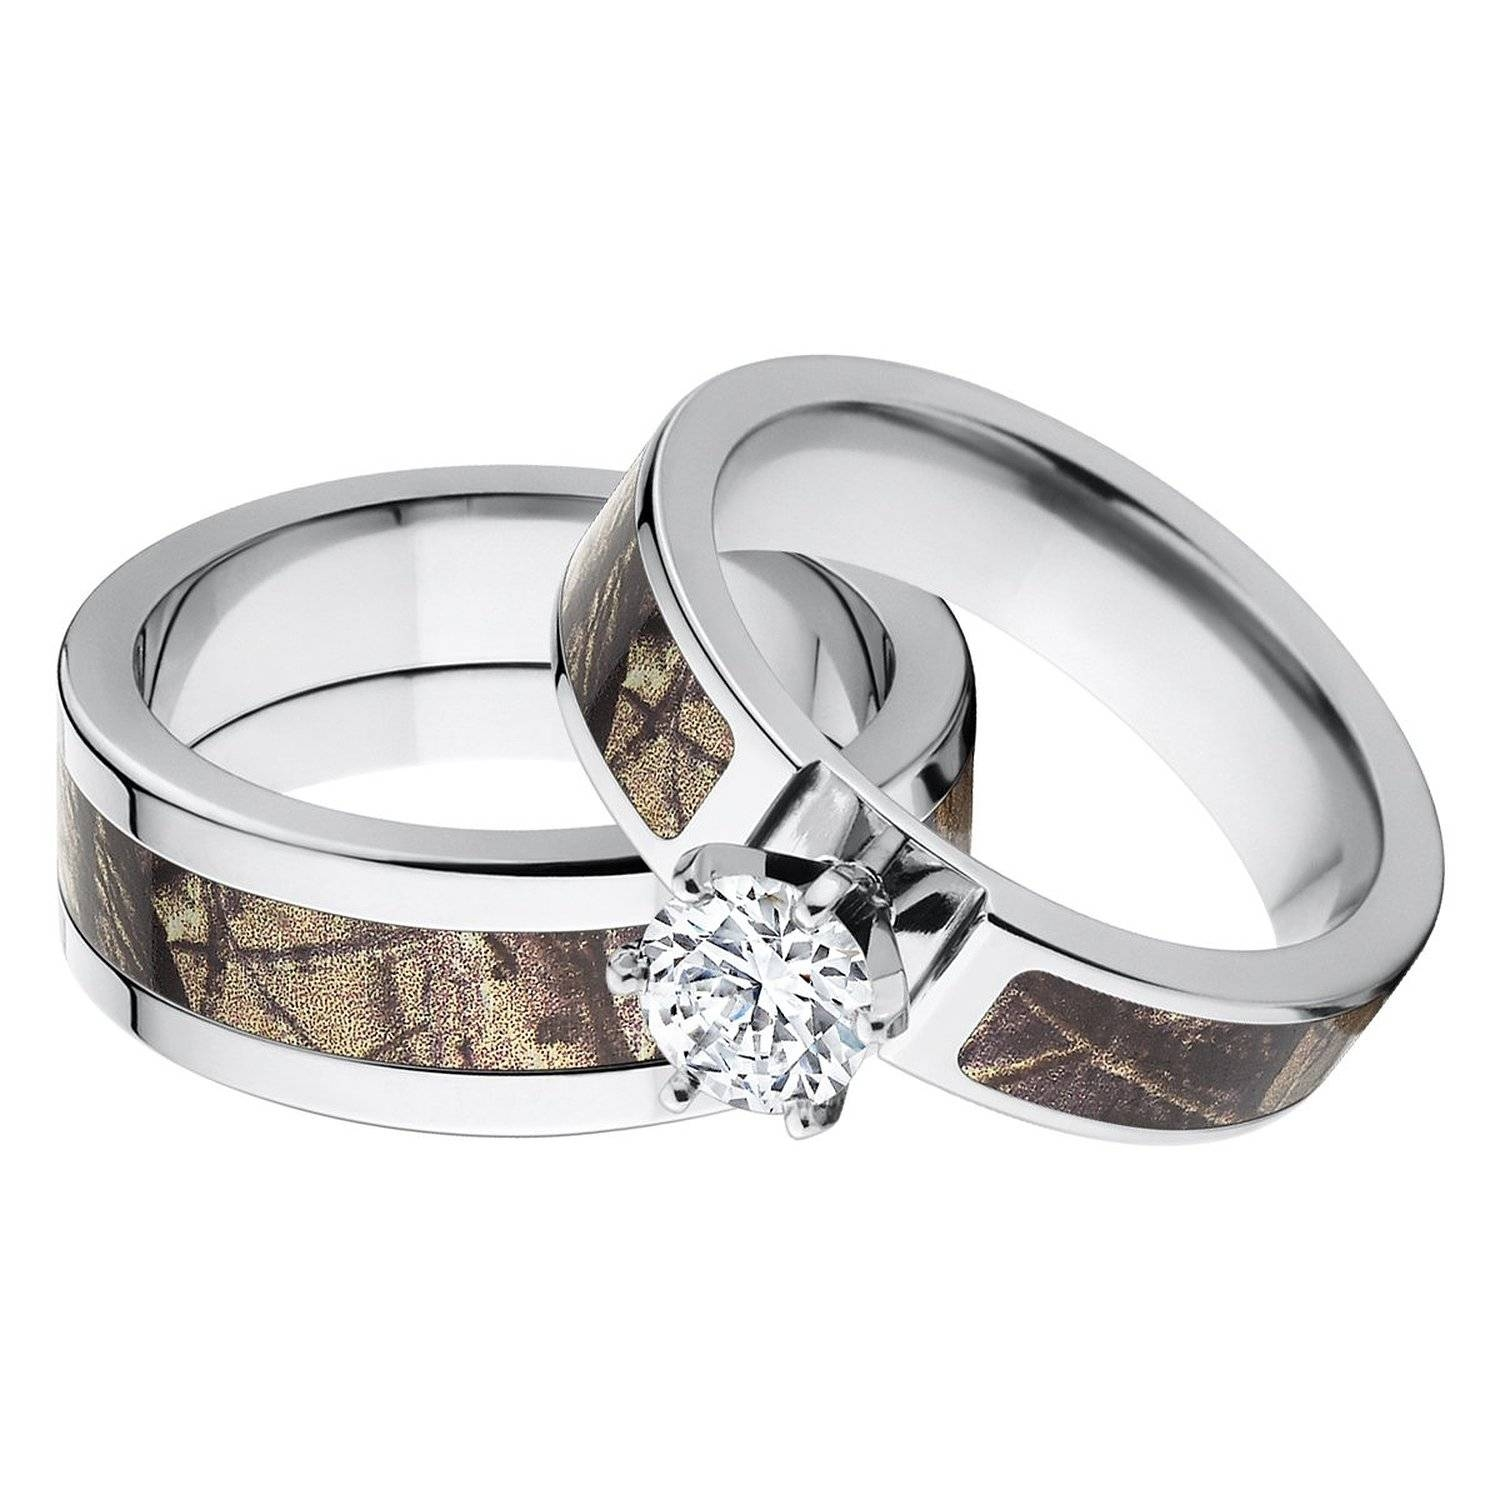 Matching Wedding Bands Show Your Forever Love In A Band | Wedding Inside Camo Wedding Rings With Diamonds (View 6 of 15)